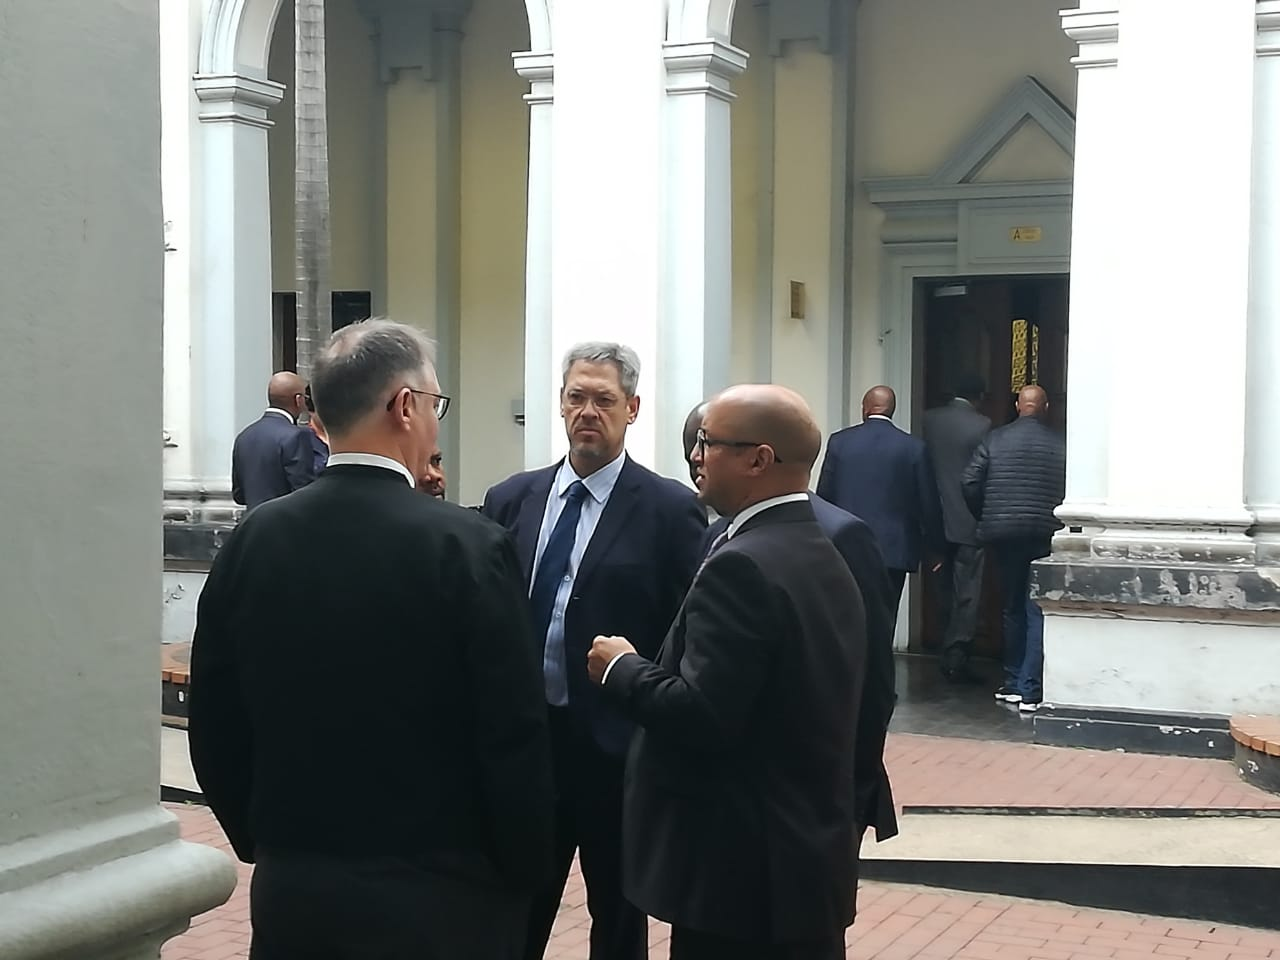 Jacob Zuma Court Appearance Brings Durban To A